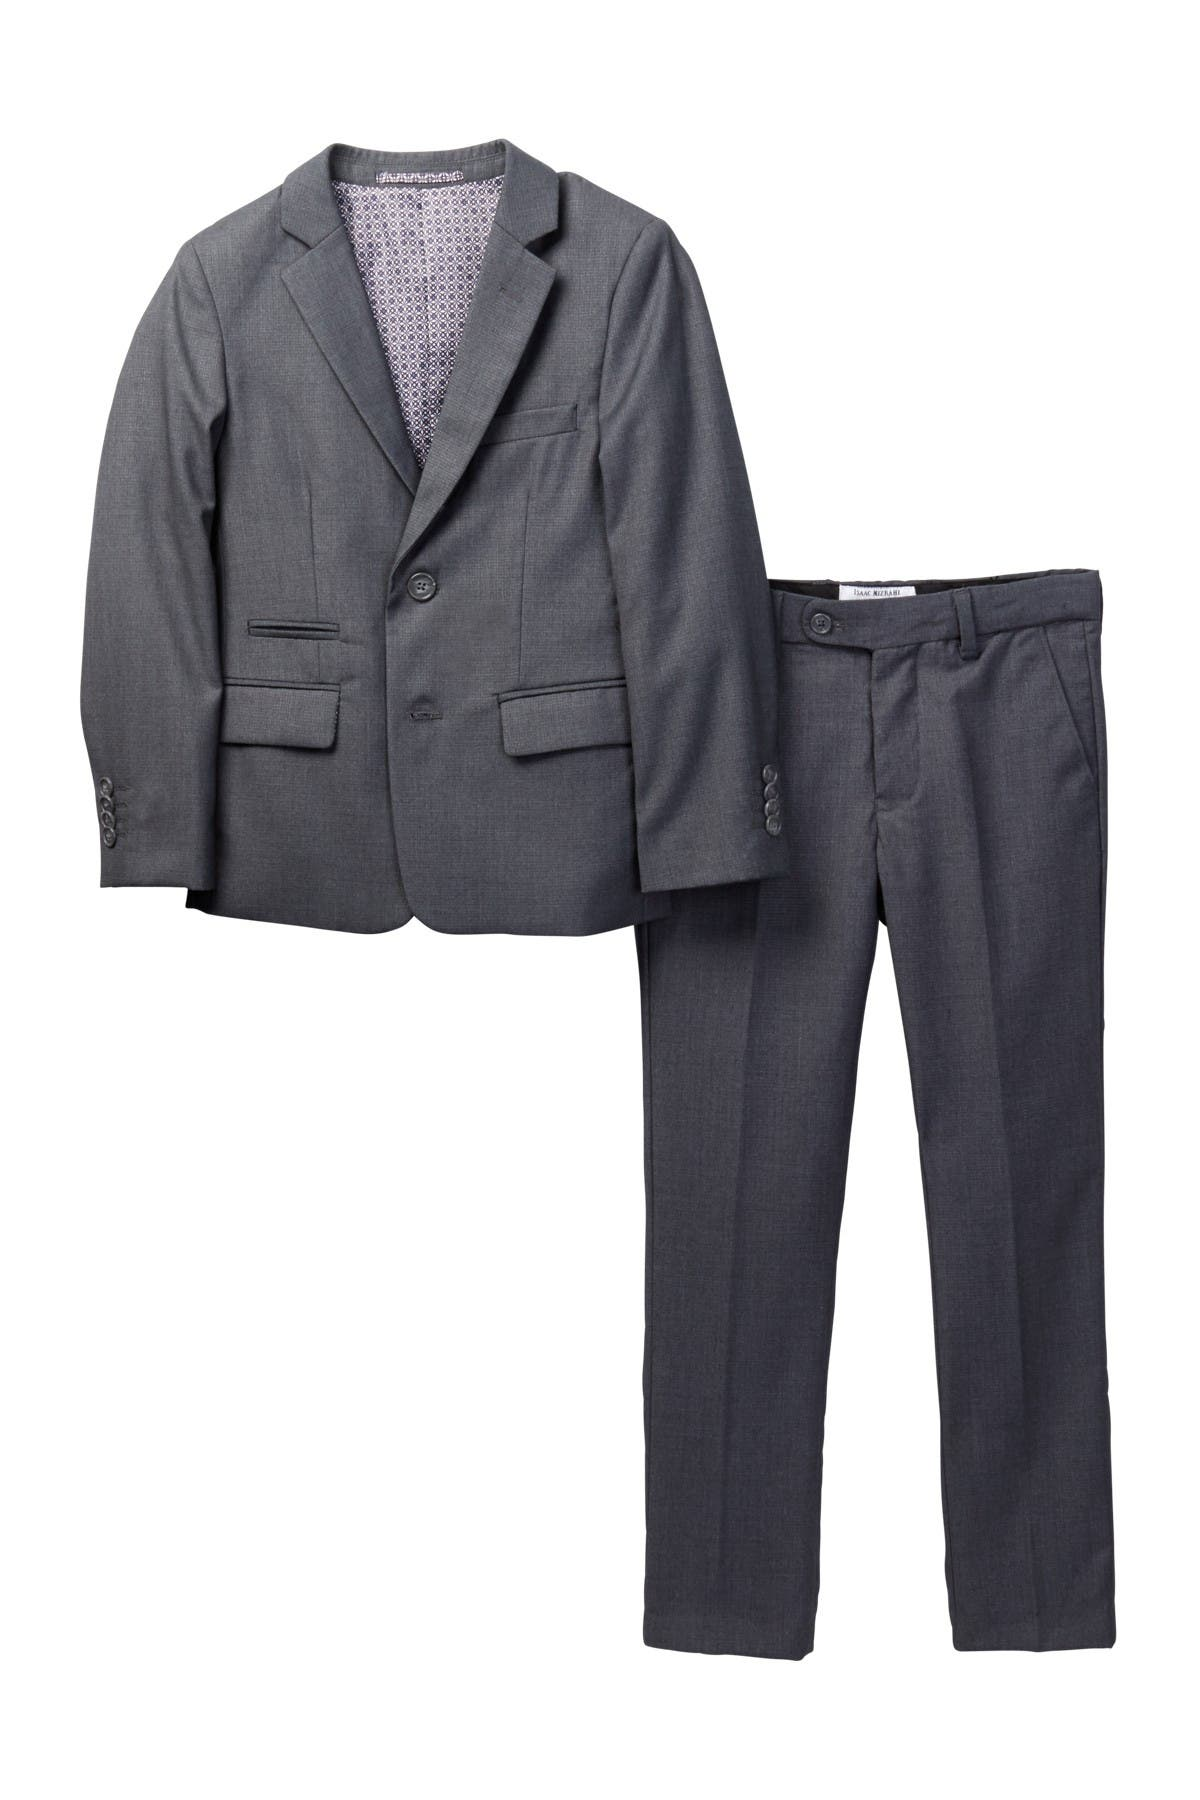 Image of Isaac Mizrahi Slim Fit Micro Gingham 2-Piece Suit